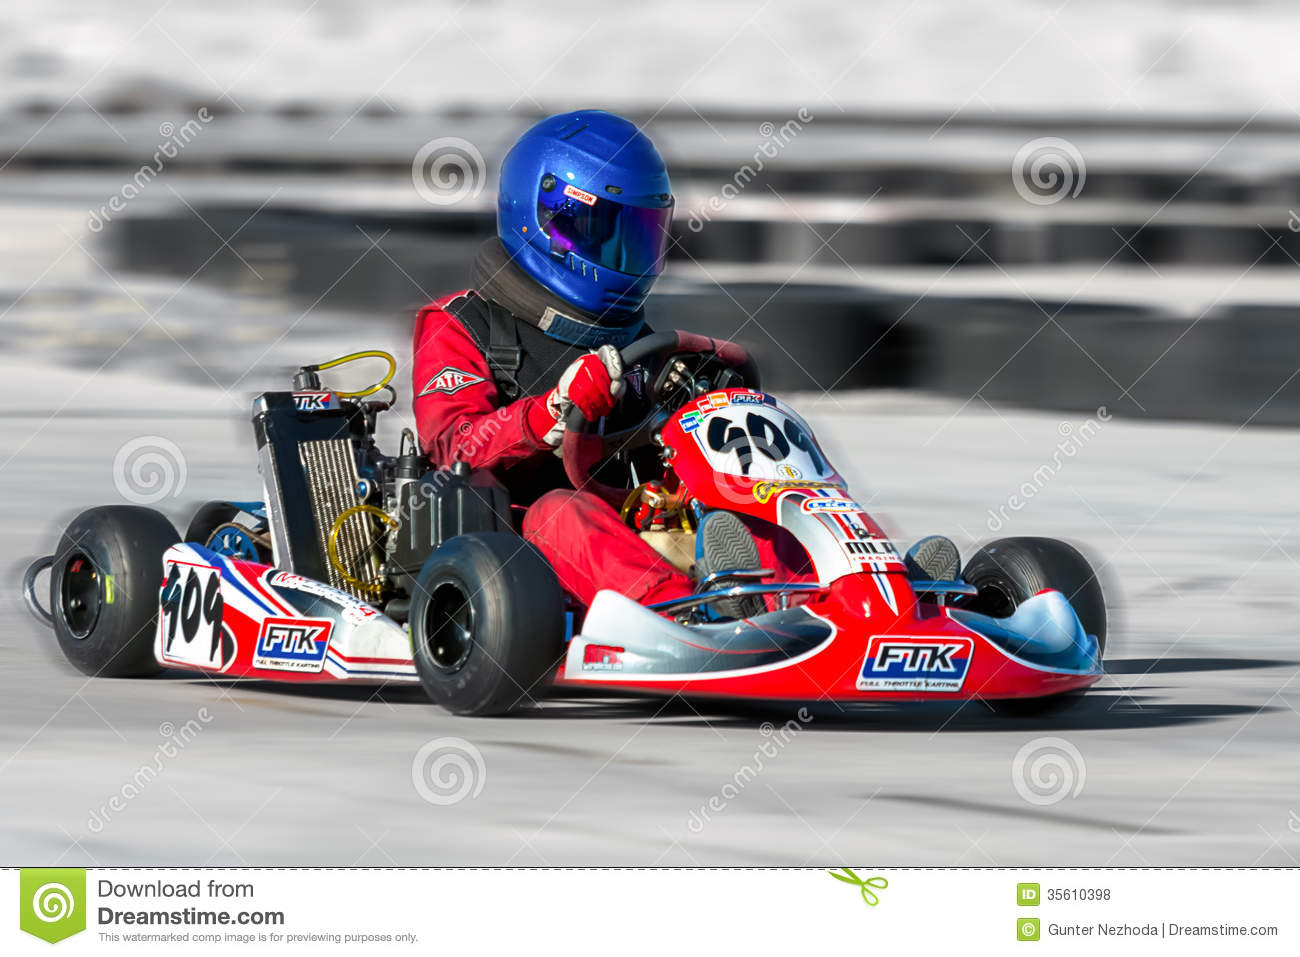 blueprints plans free with Royalty Free Stock Photos Racing Go Kart Race Track Image35610398 on Index also Airbus a340 600 furthermore Ferret Cage as well Free furthermore Jaguar d Type.